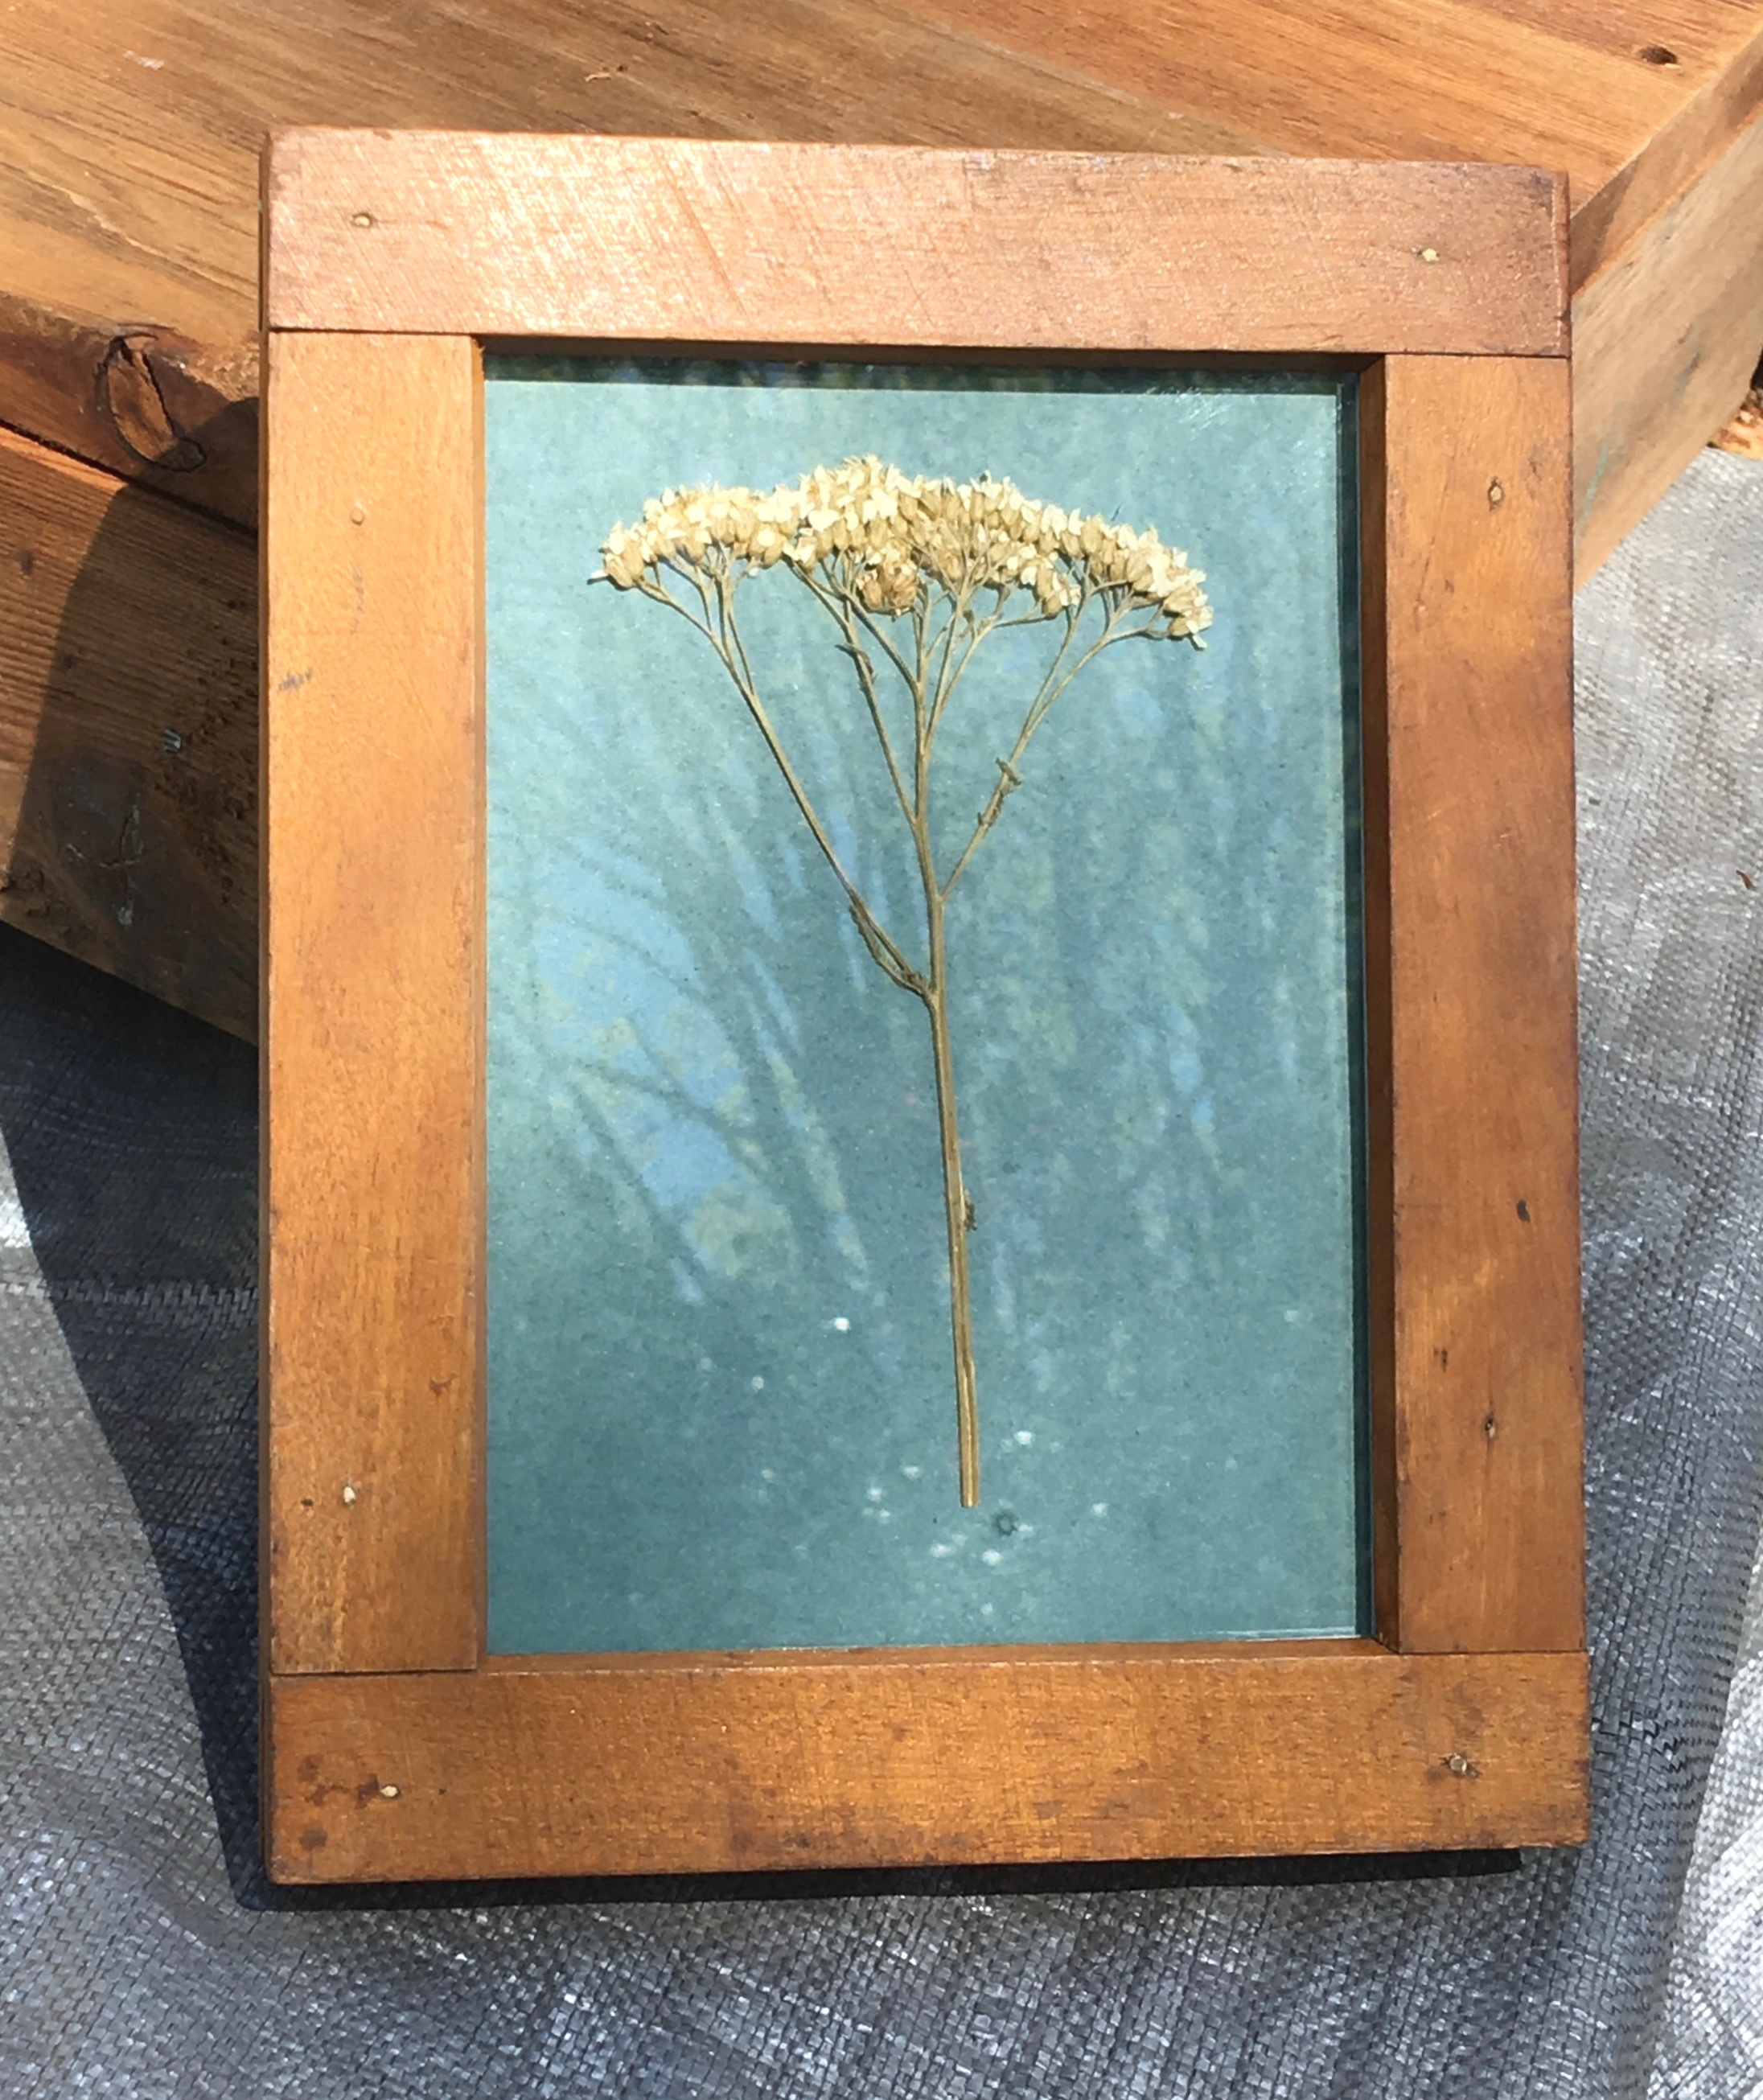 Yarrow being exposed in the sun, antique frame.